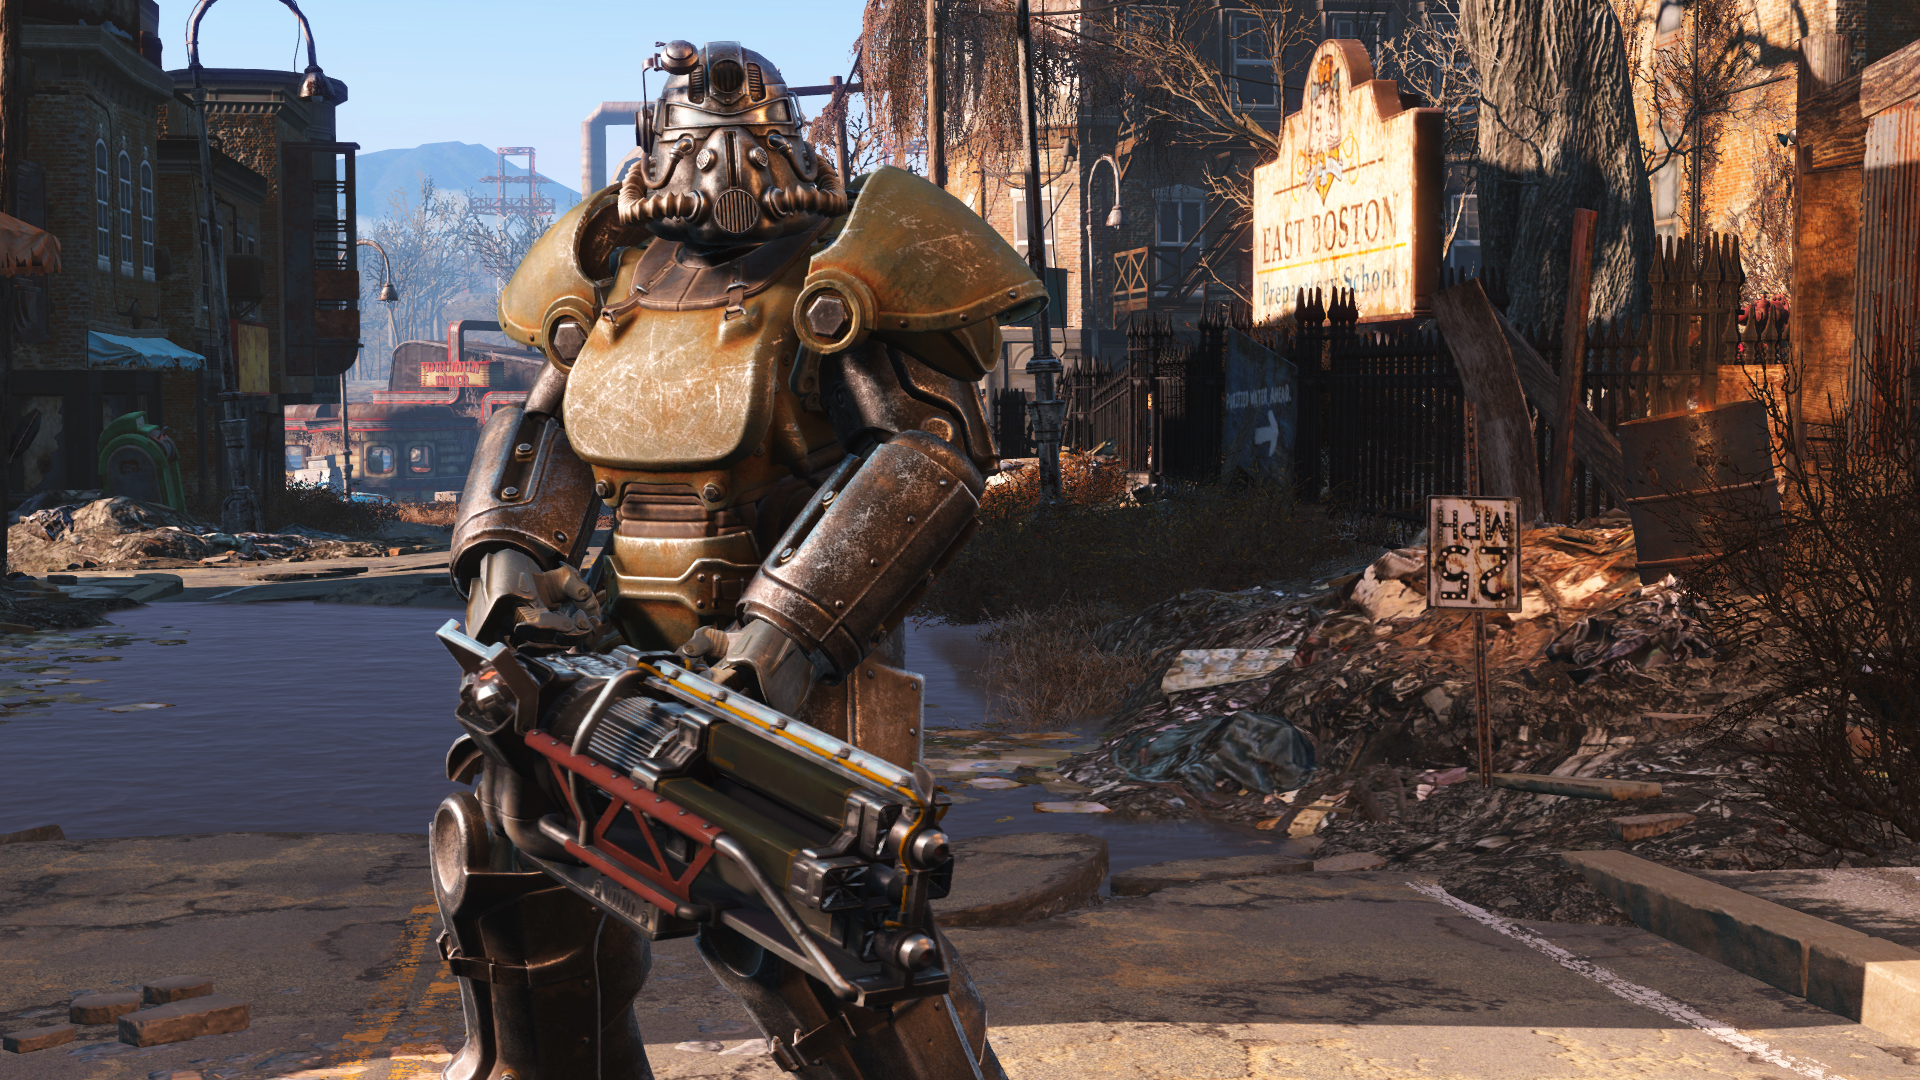 Fallout 4 PC Performance and Optimization Analyzed - Game ...